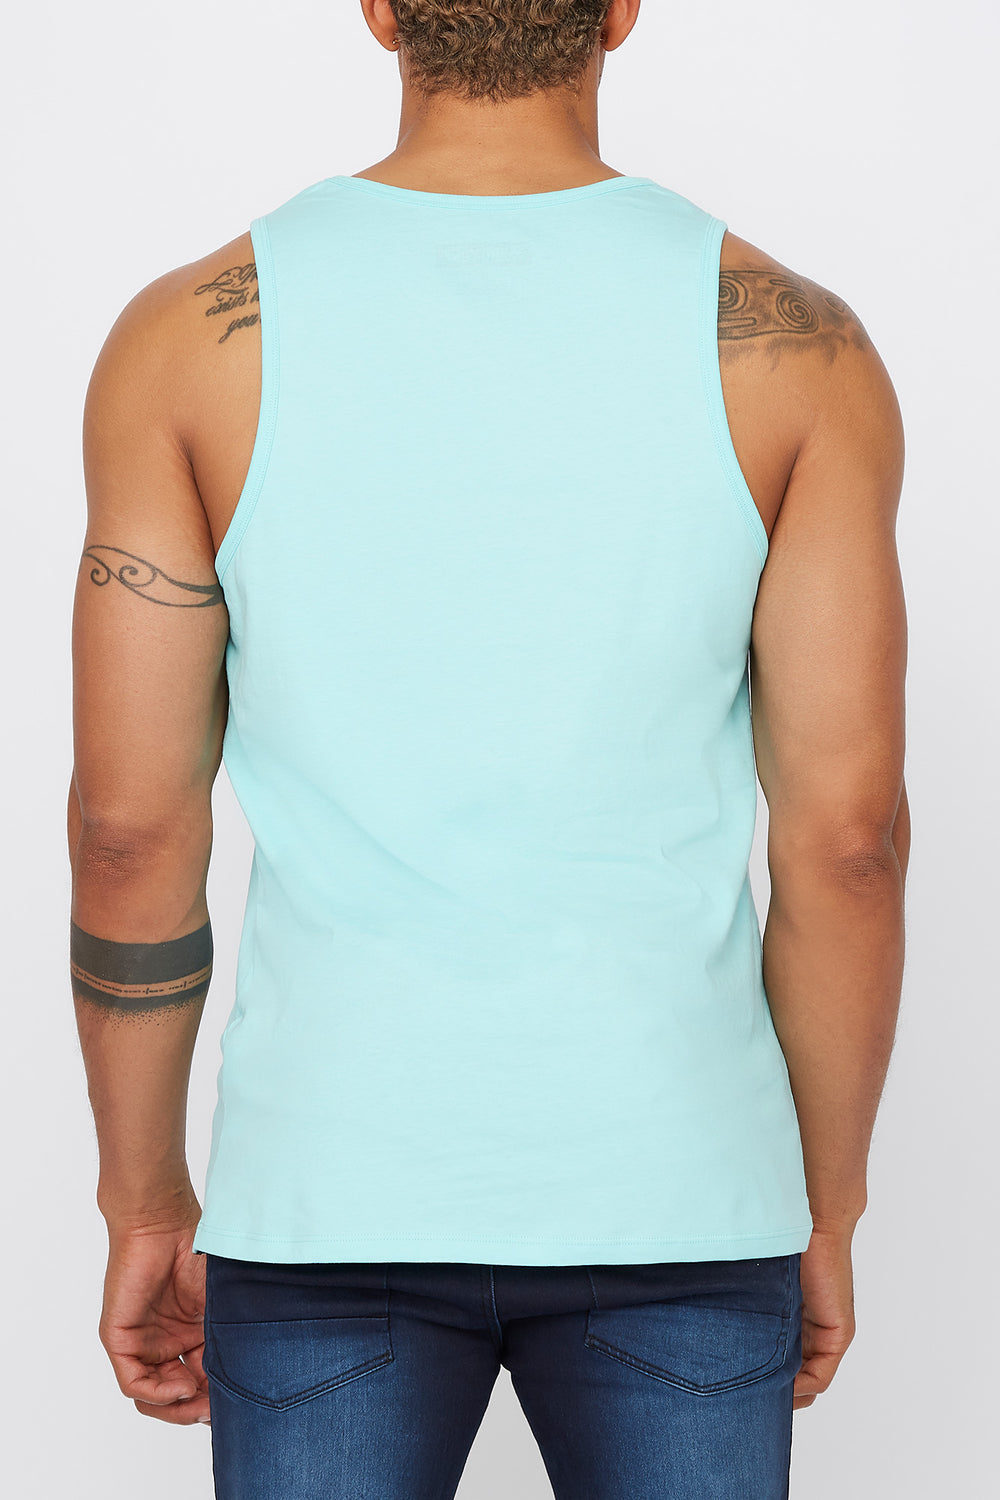 Camisole Flamants Roses Zoo York Homme Sauge